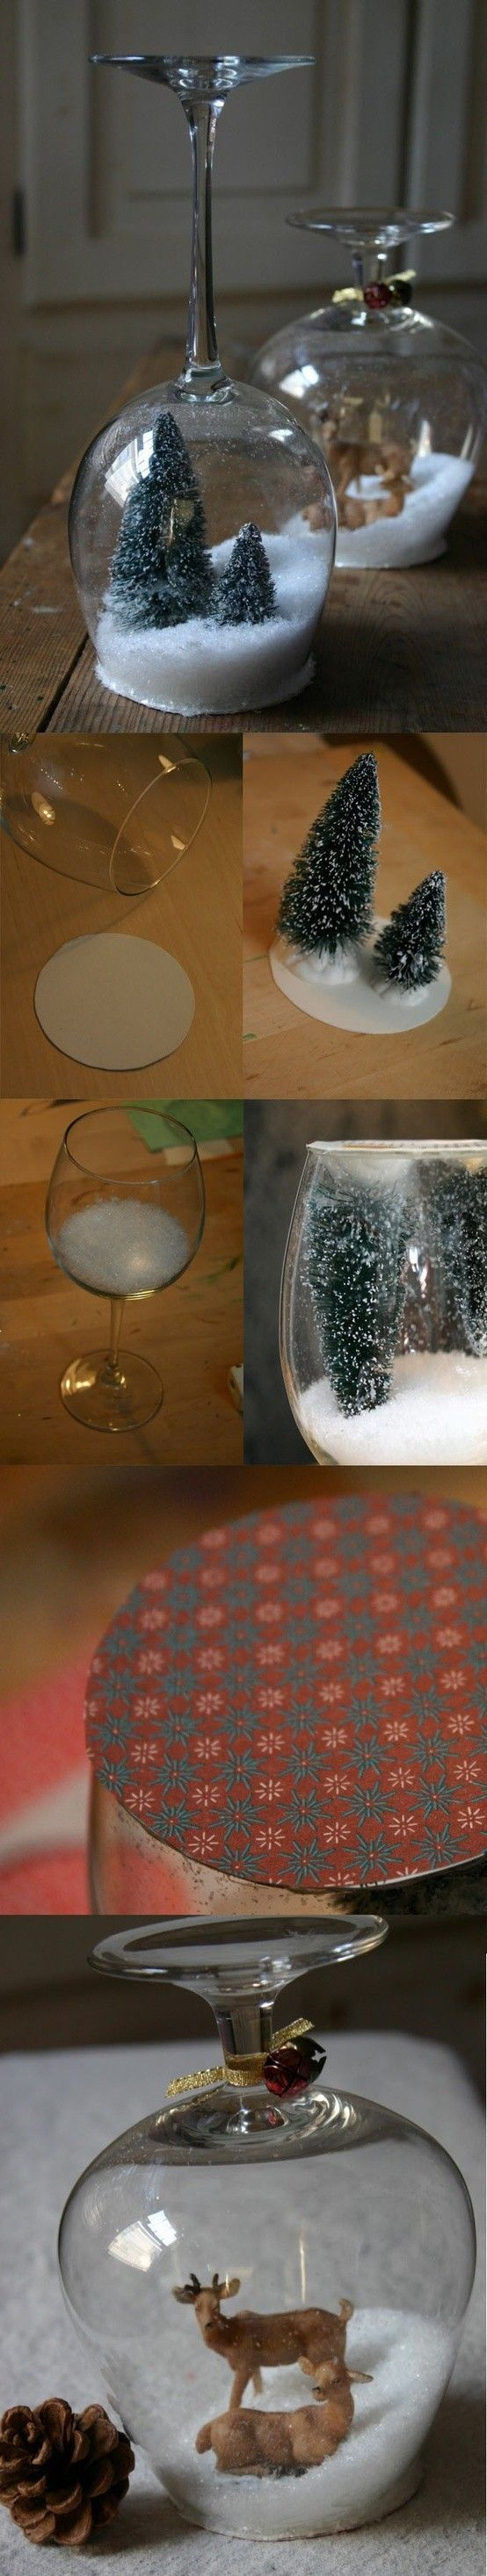 DIY Christmas gift - Wine glass snowglobe! Add any ornament you wish! So want to do this with a little penguin